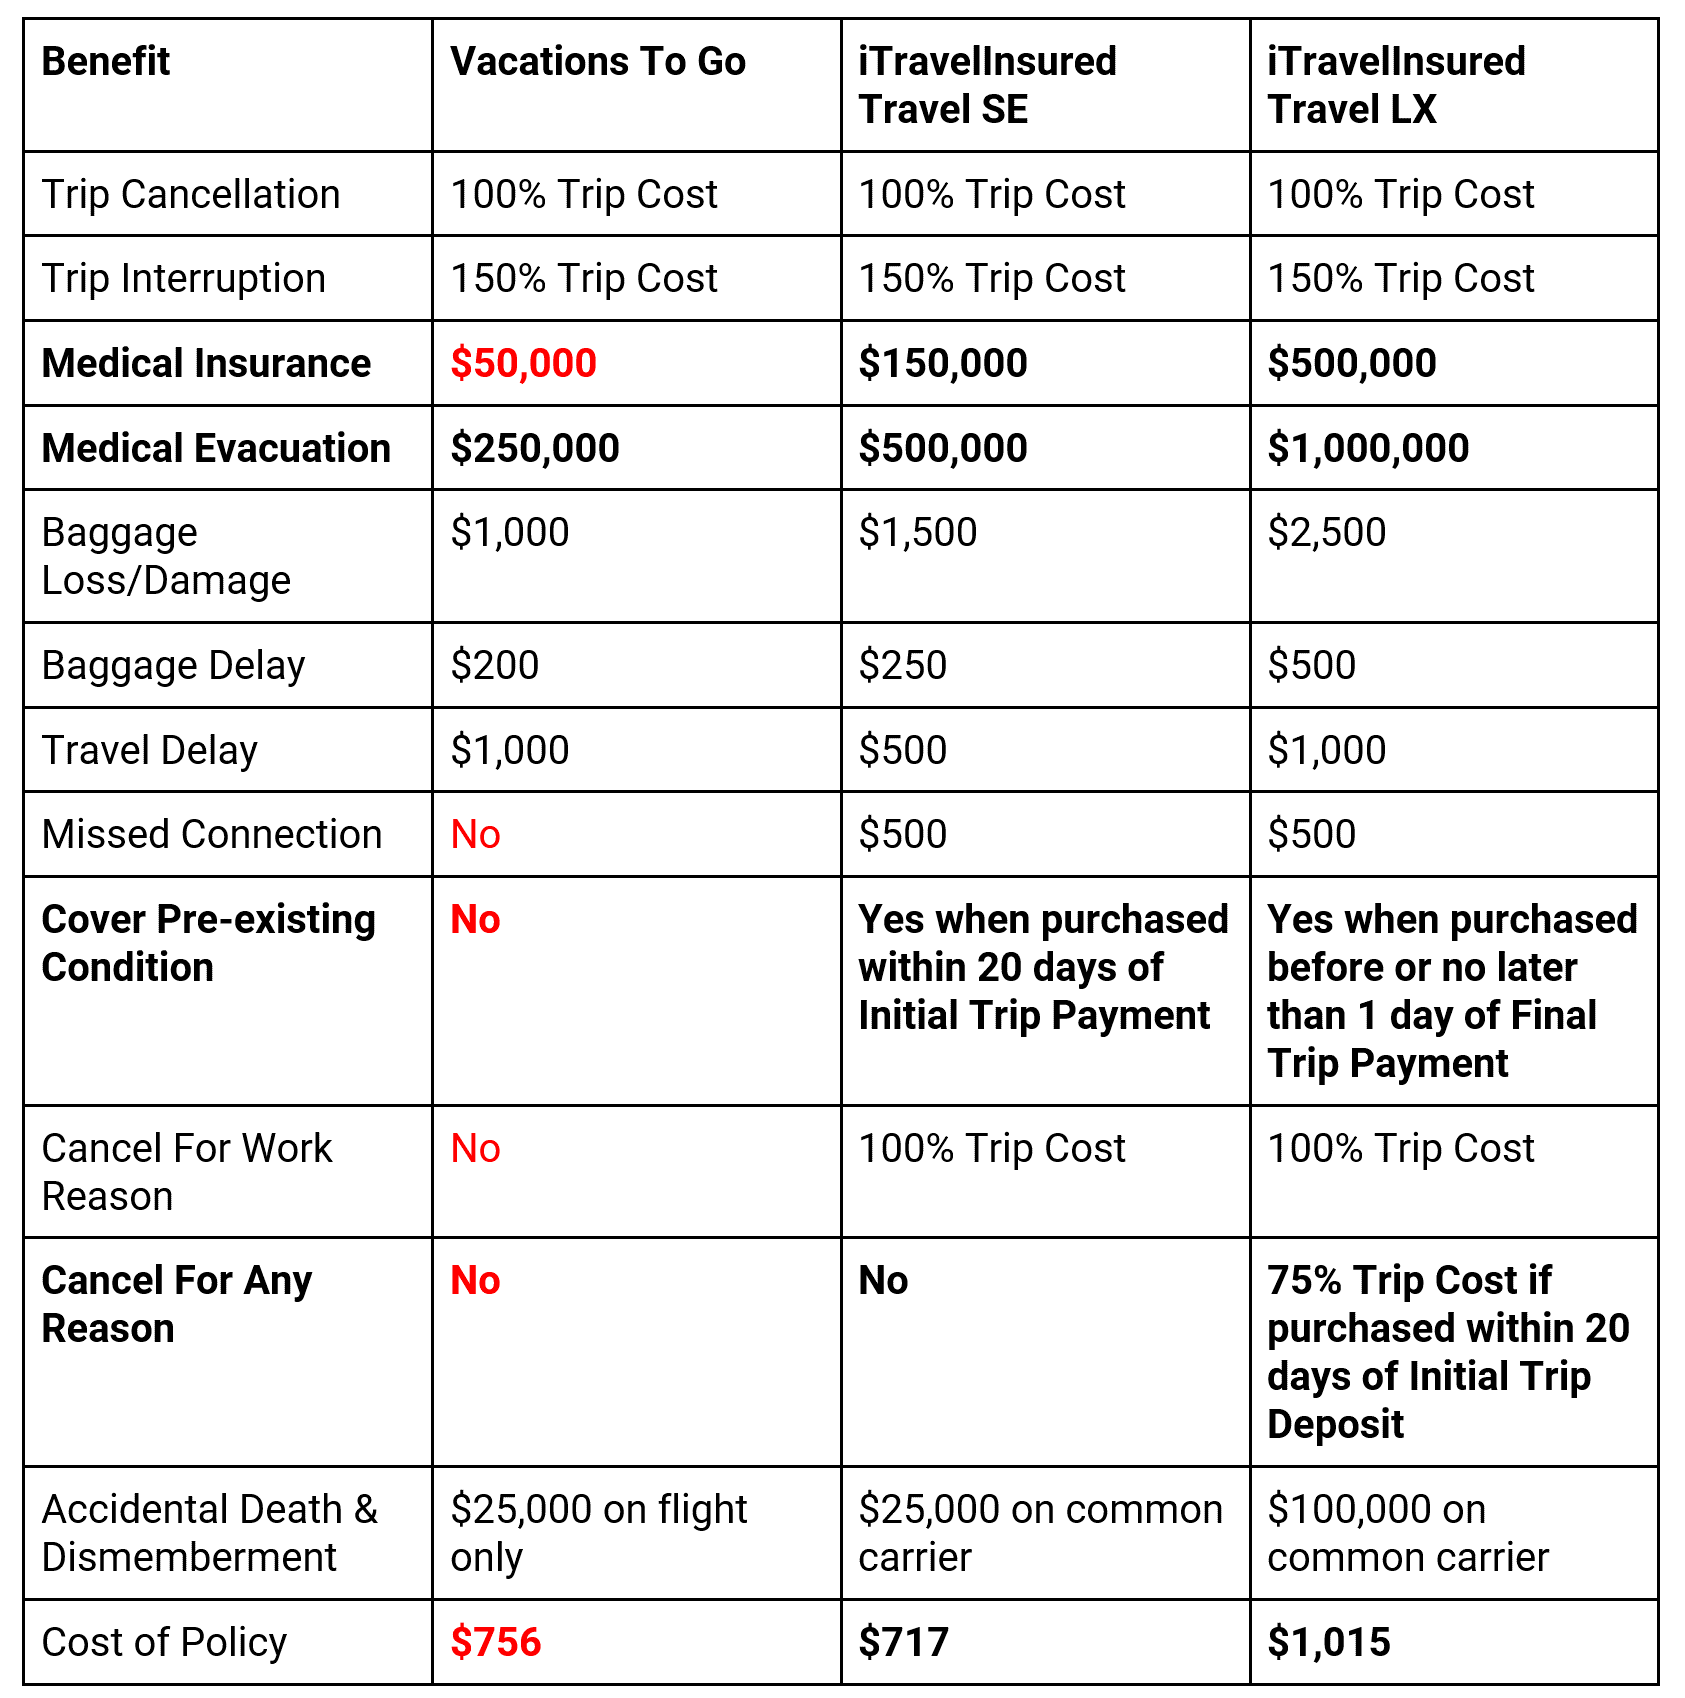 Vacations-To-Go-Comparison | AARDY.com